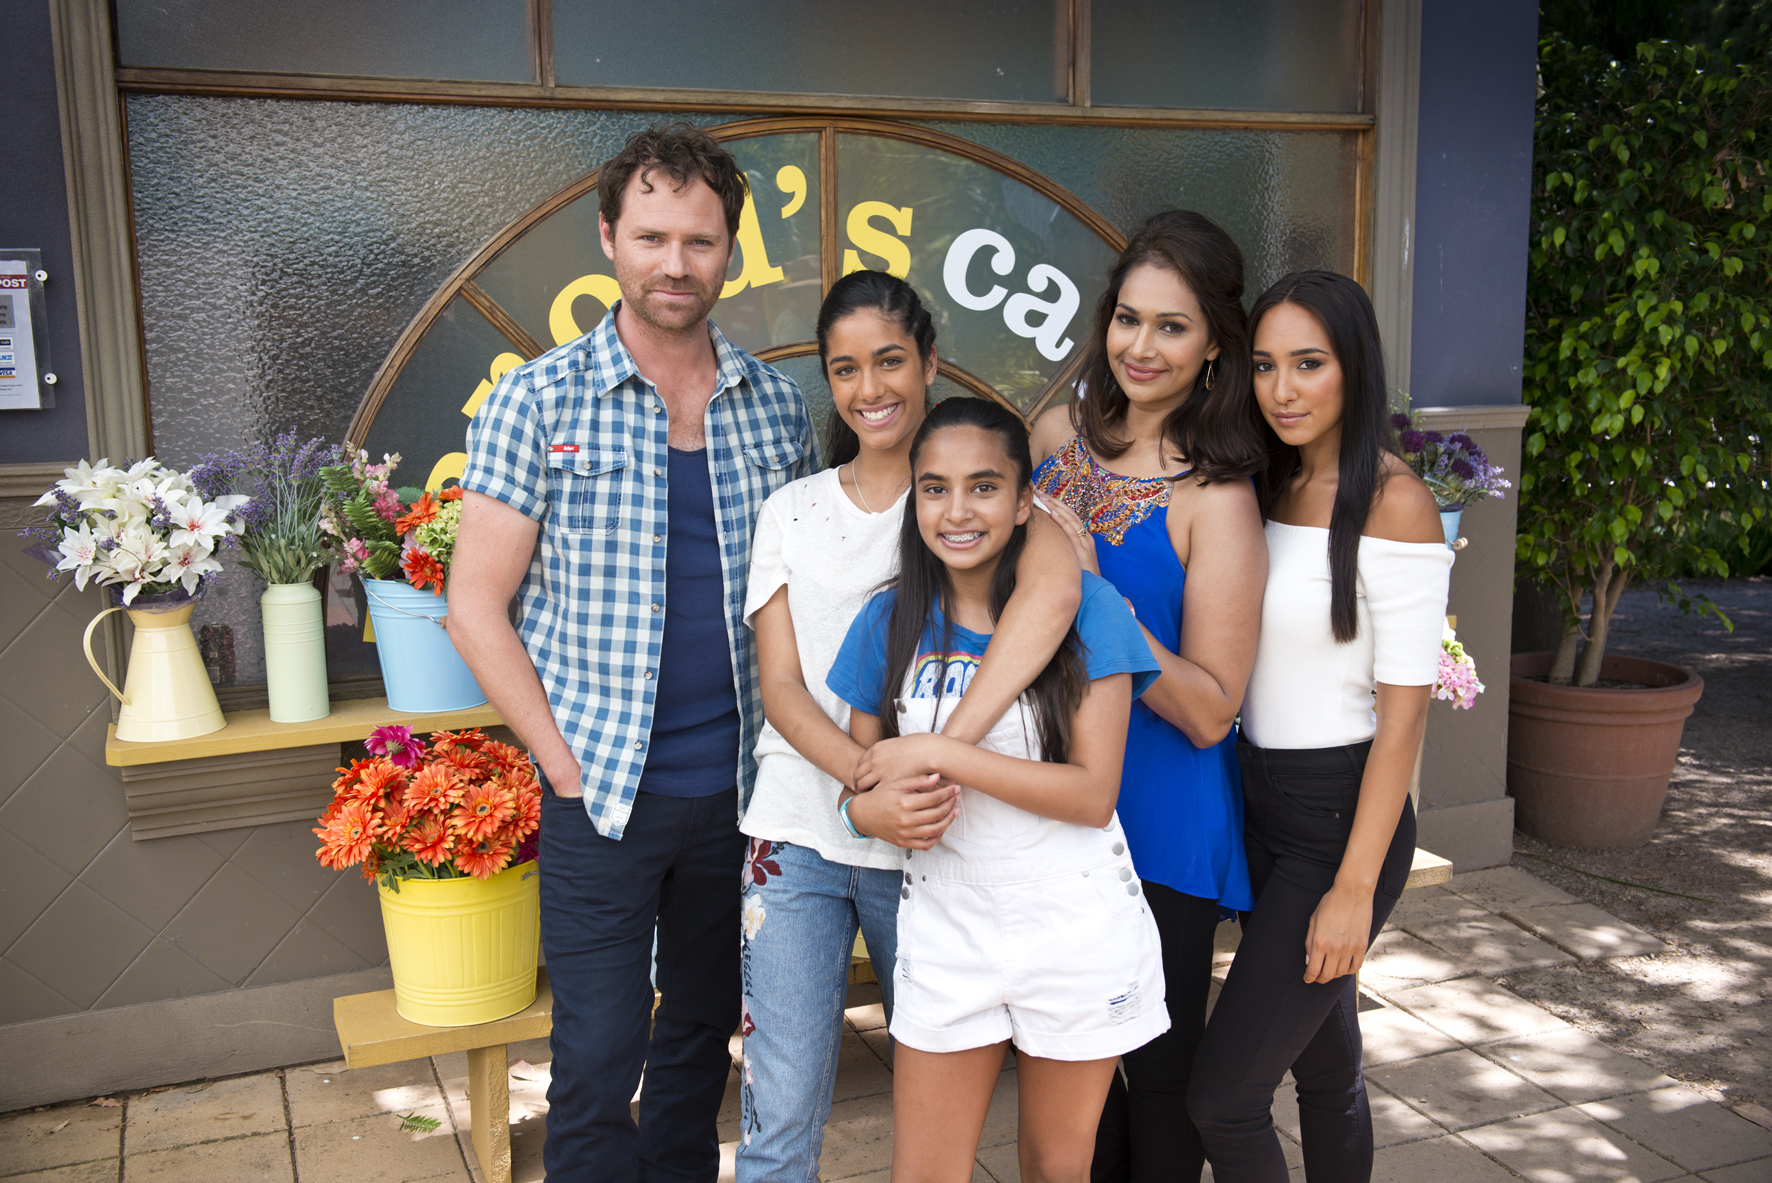 There's a new family arriving in Neighbours as the Rebecchis get some new additions